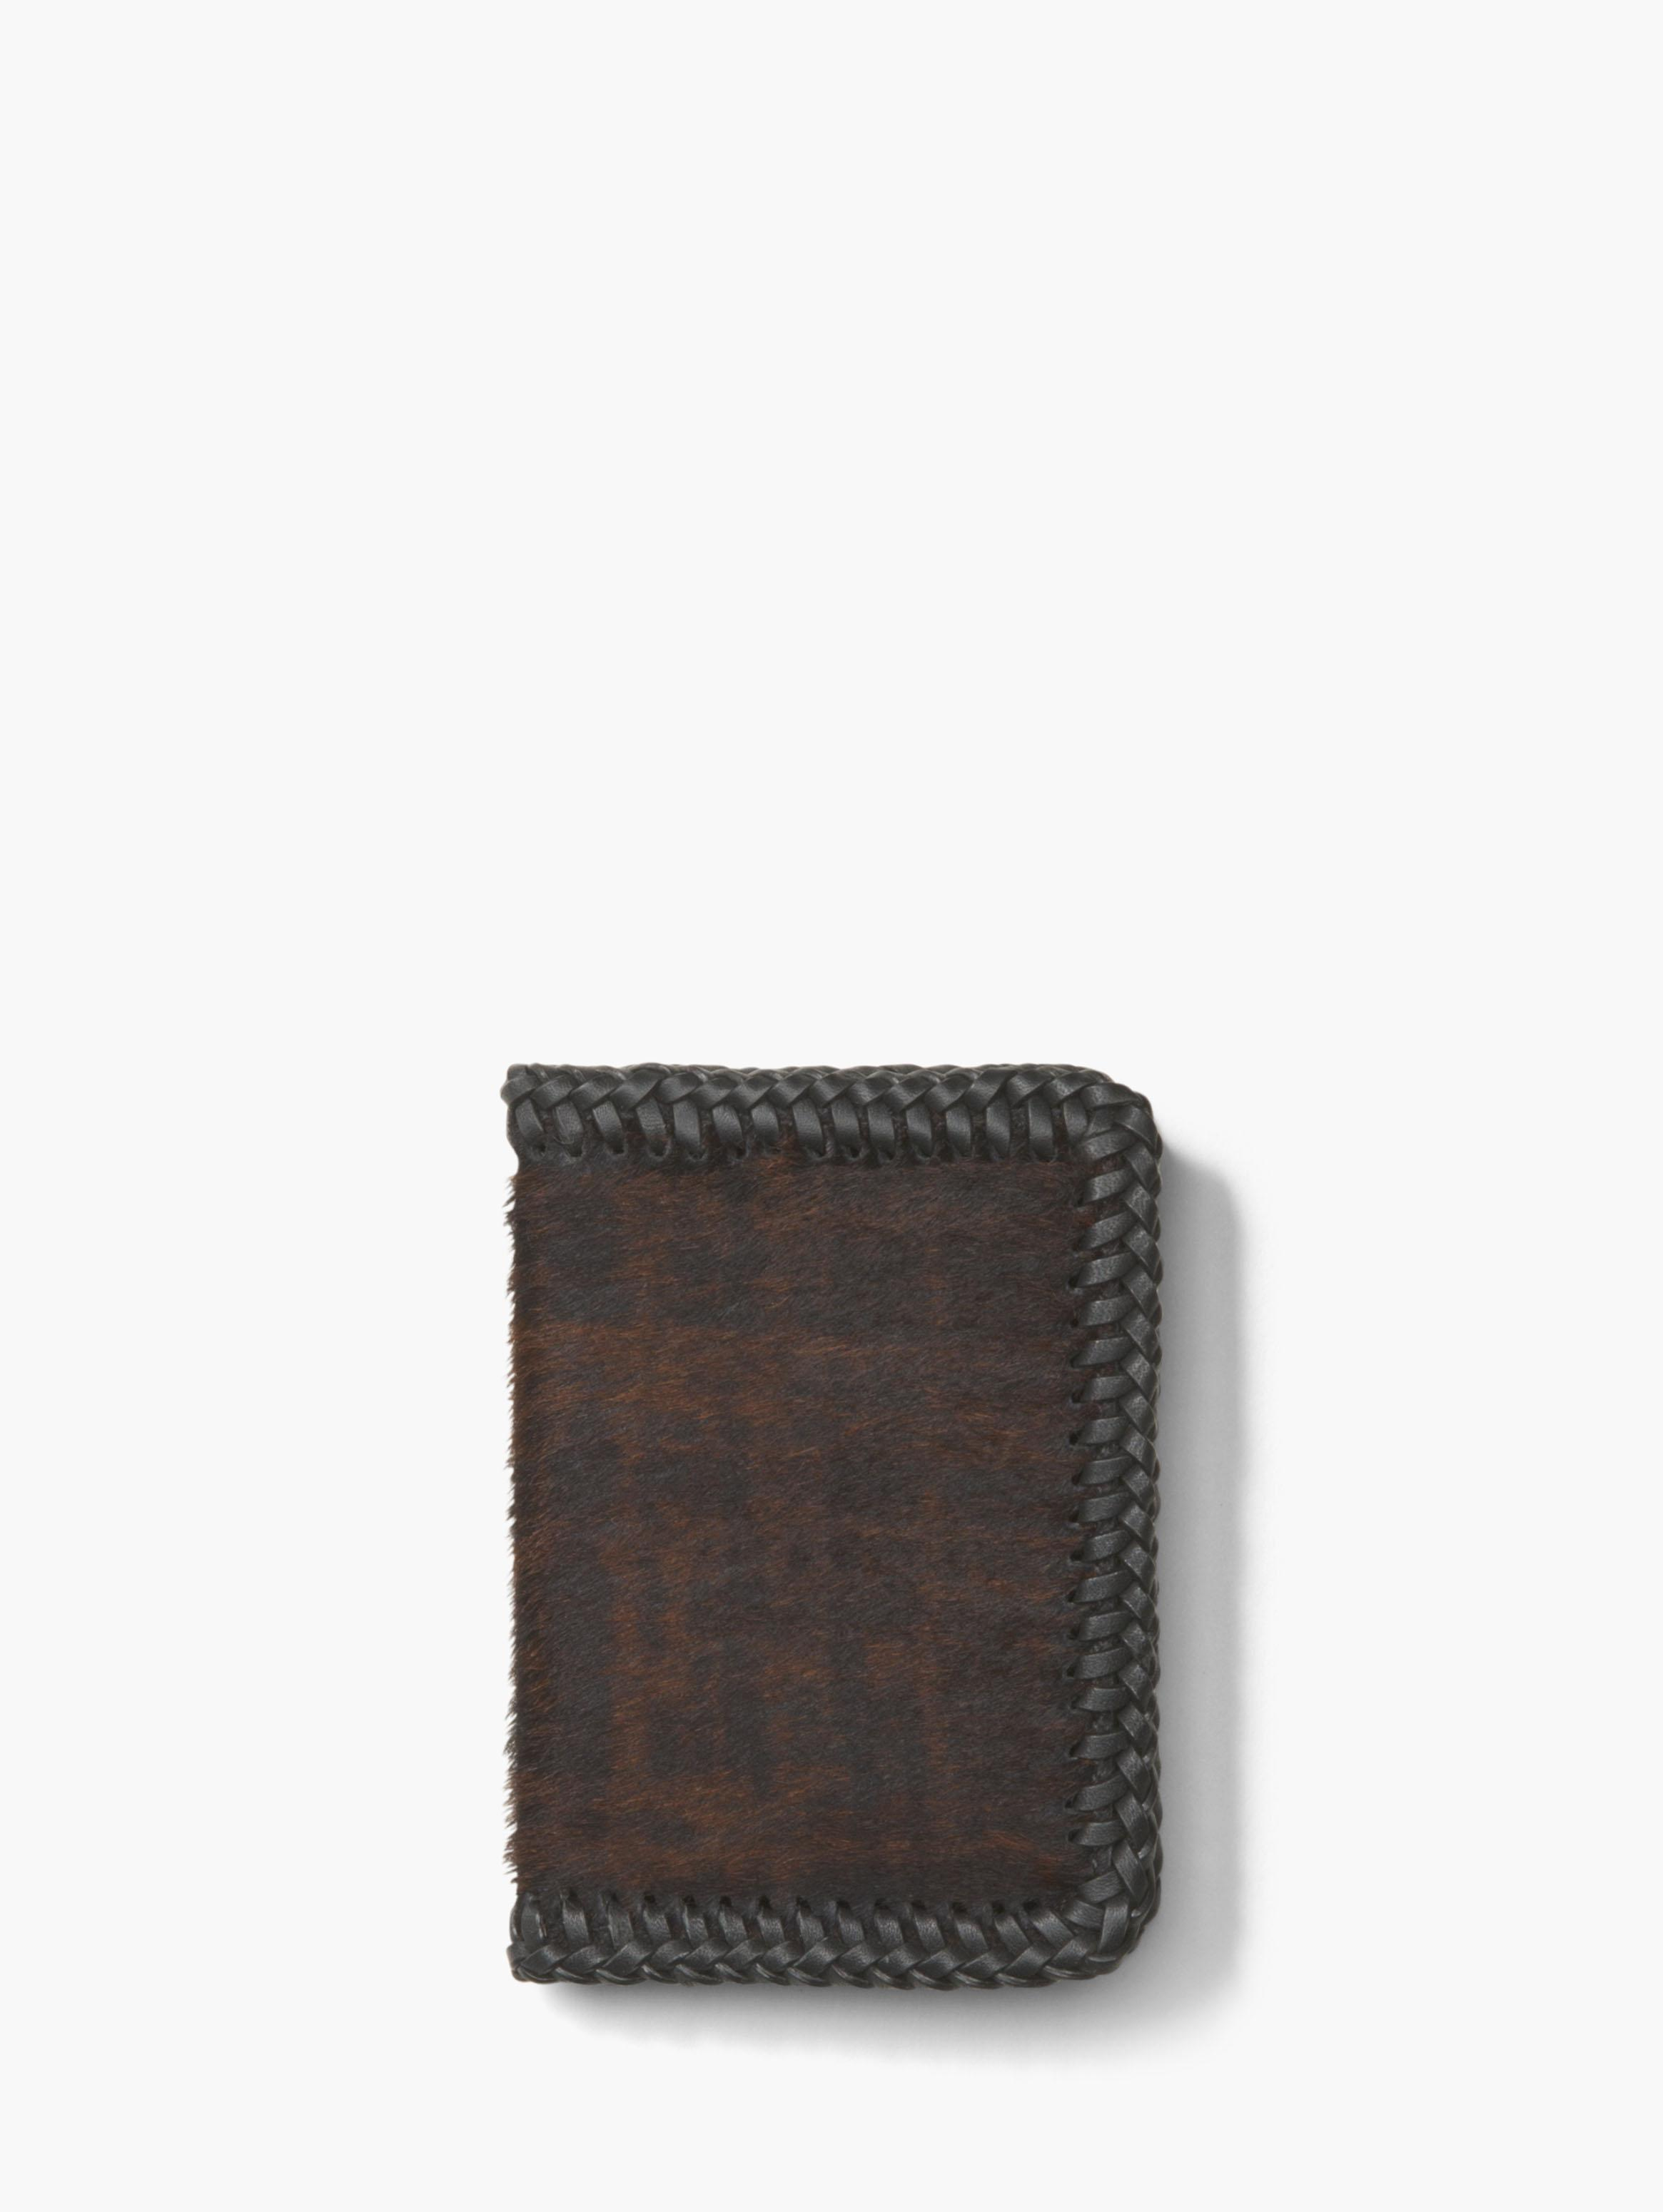 Whip Stitched Card Case